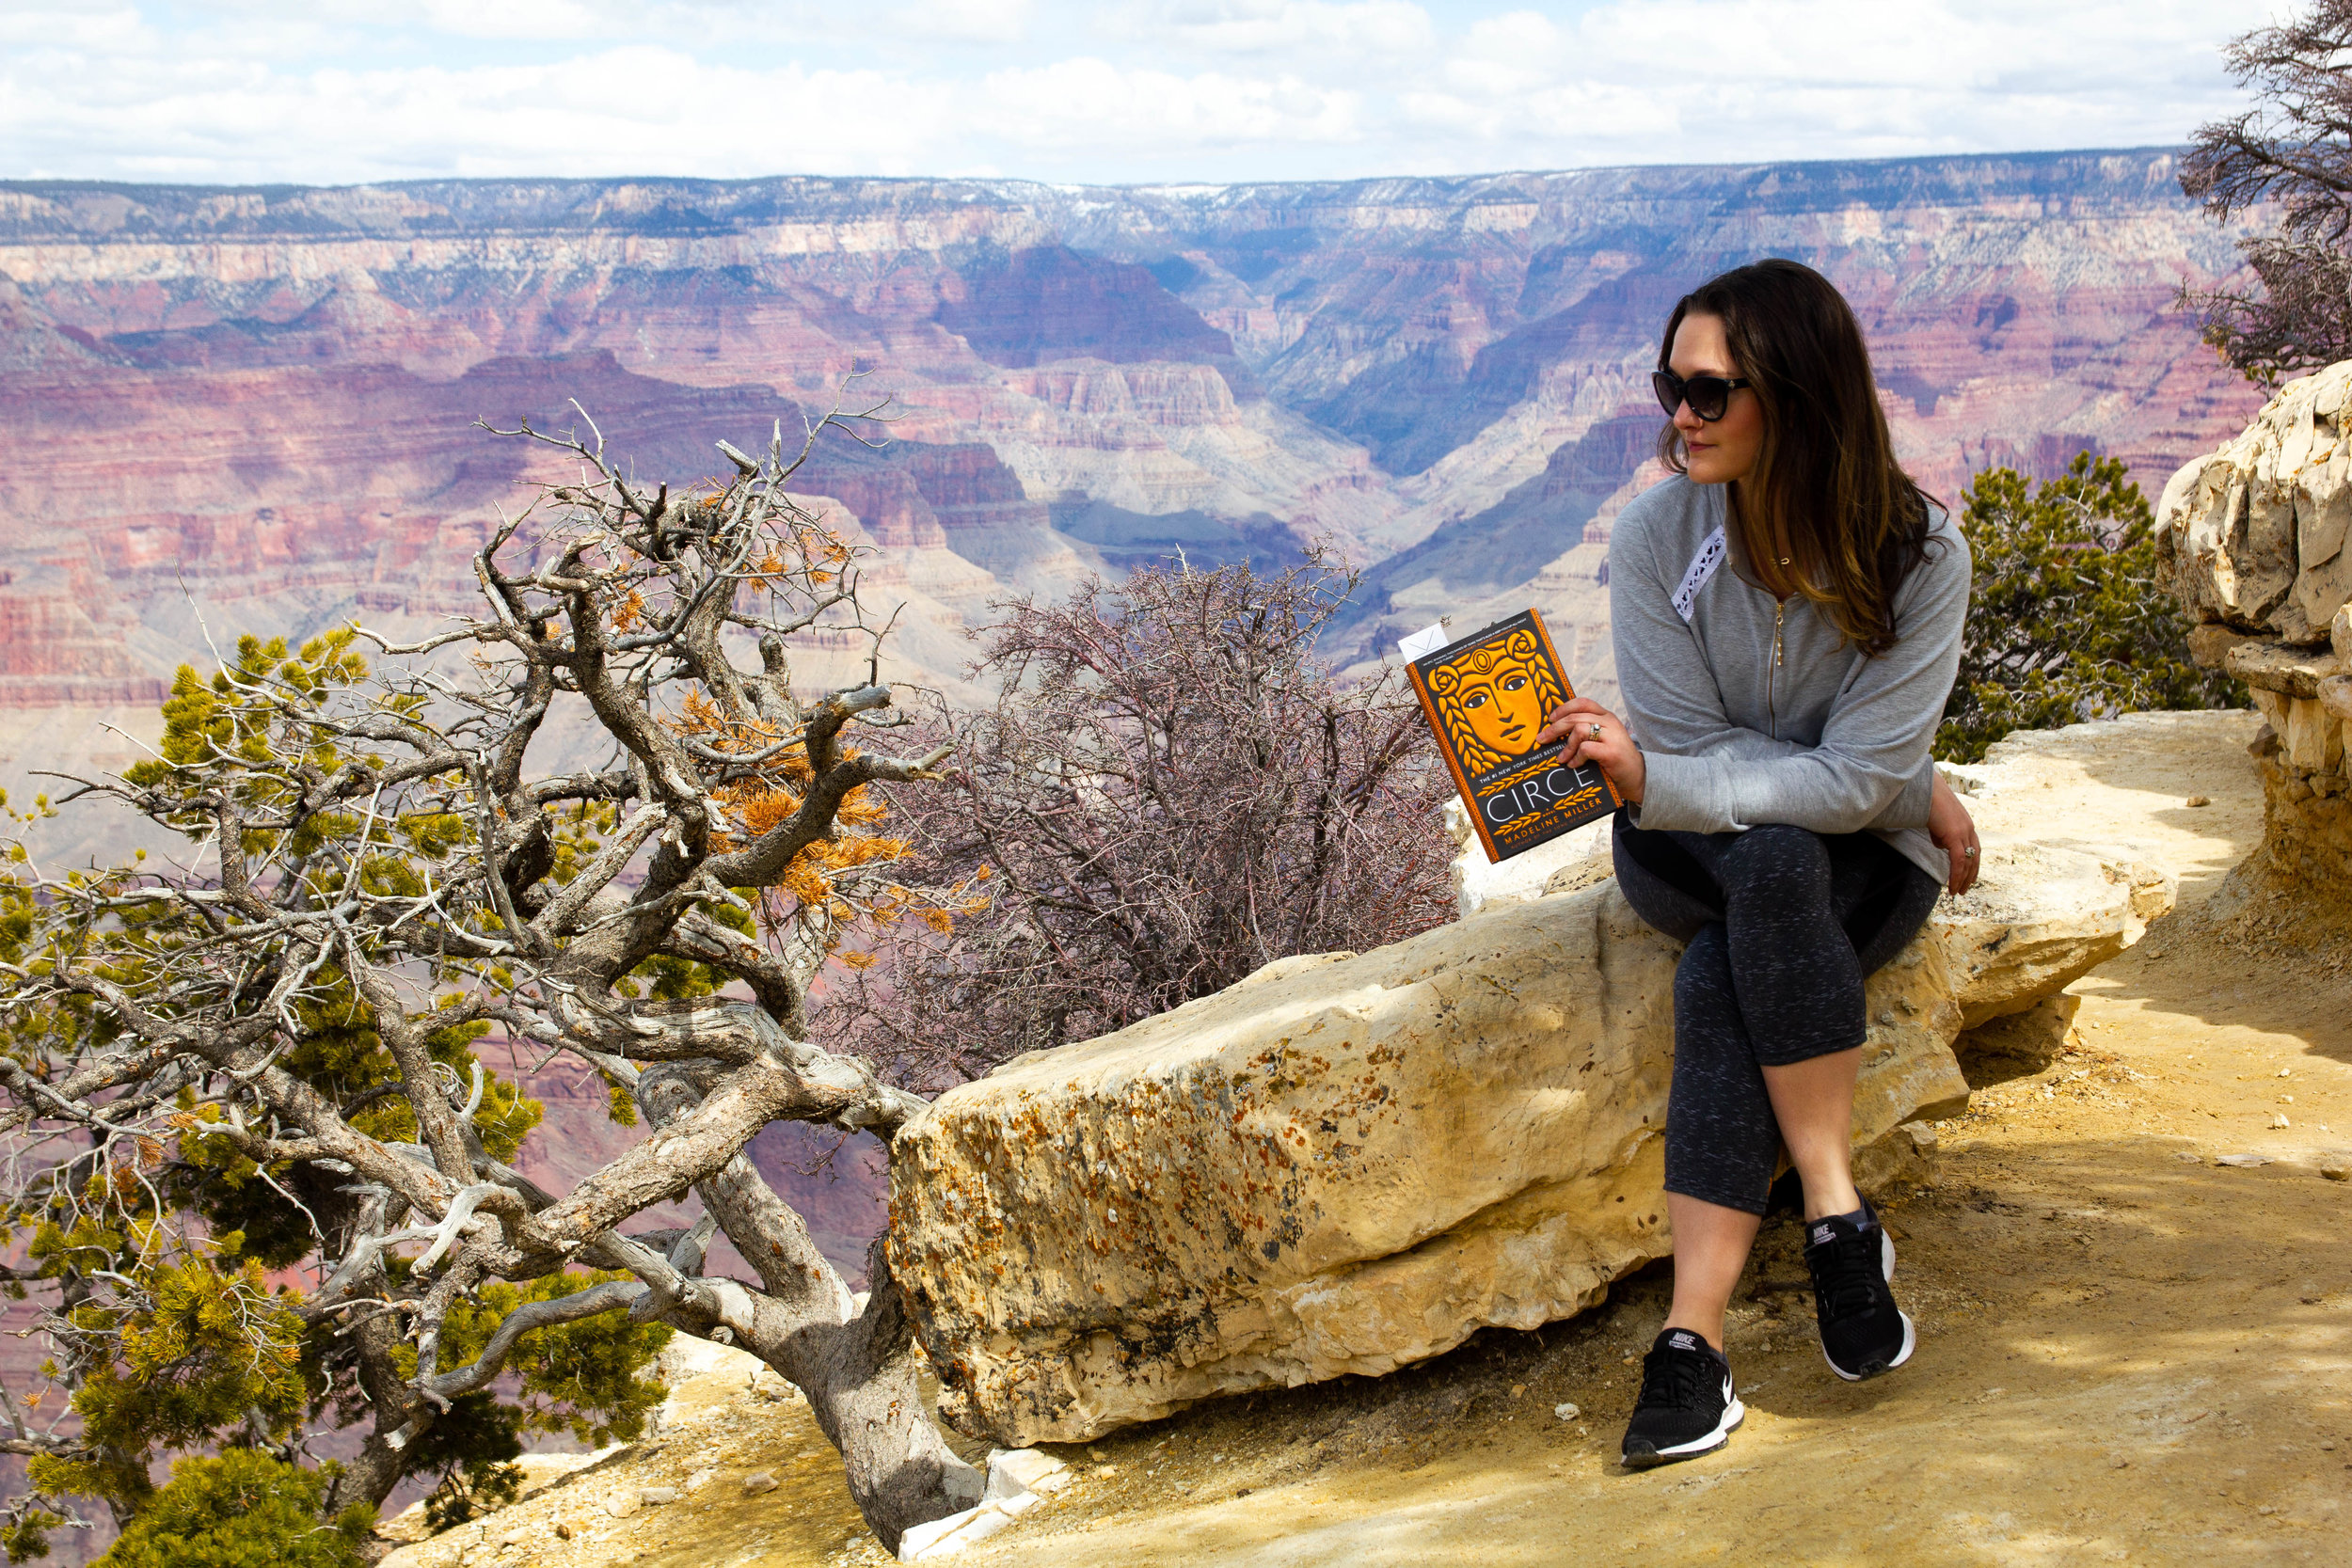 Reading Circe by Madeline Miller at the Grand Canyon